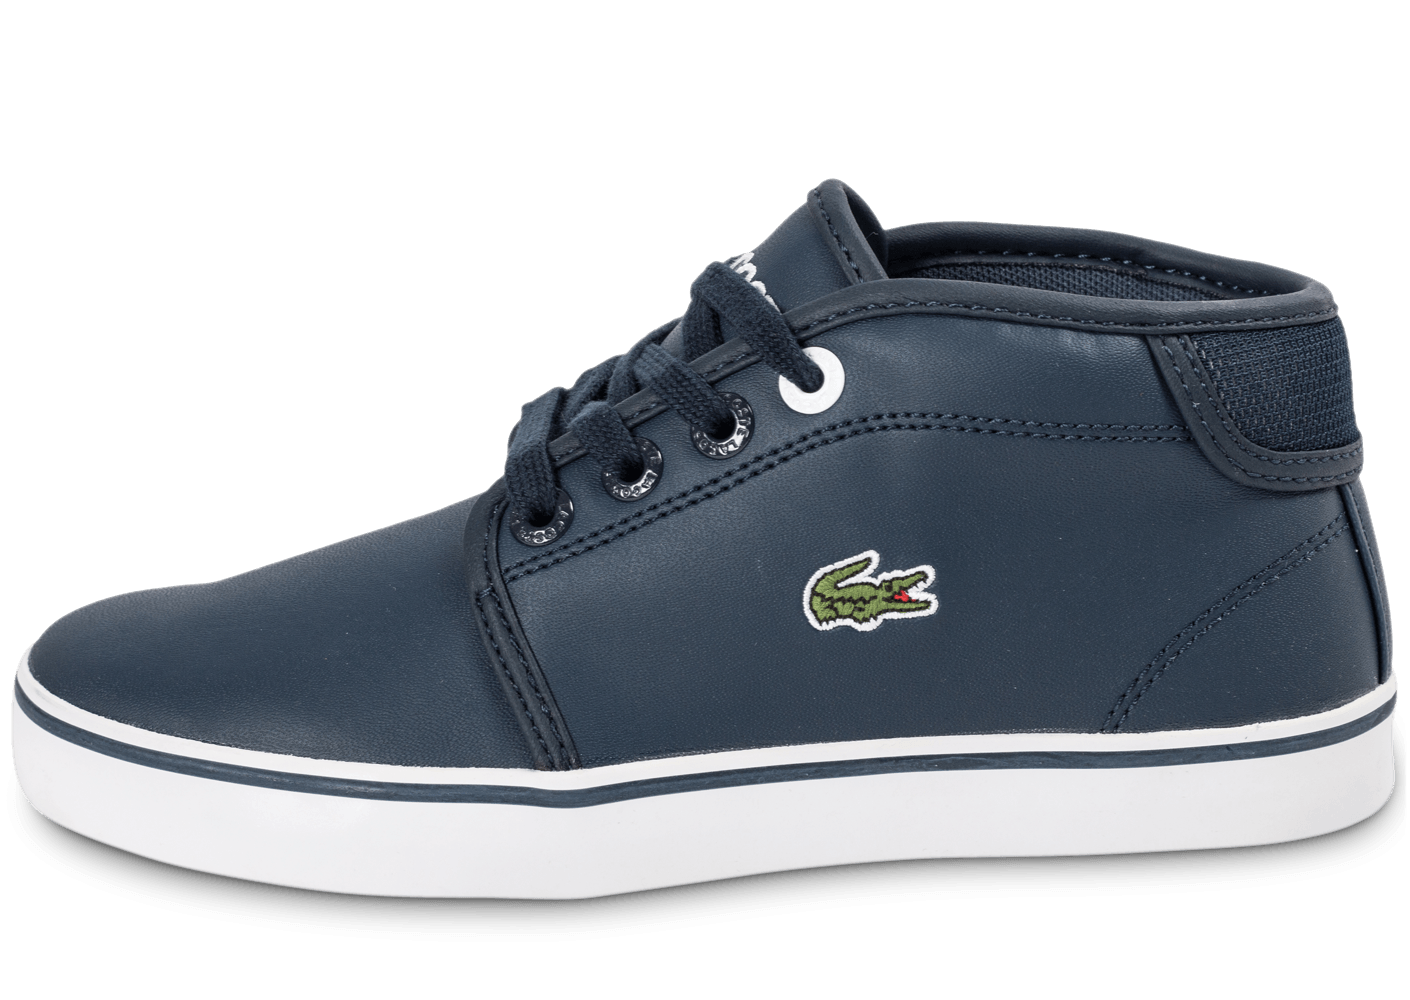 Lacoste chaussures 1 Lace Chaussure Hommes Garcon Marice 117 KTl1JFc